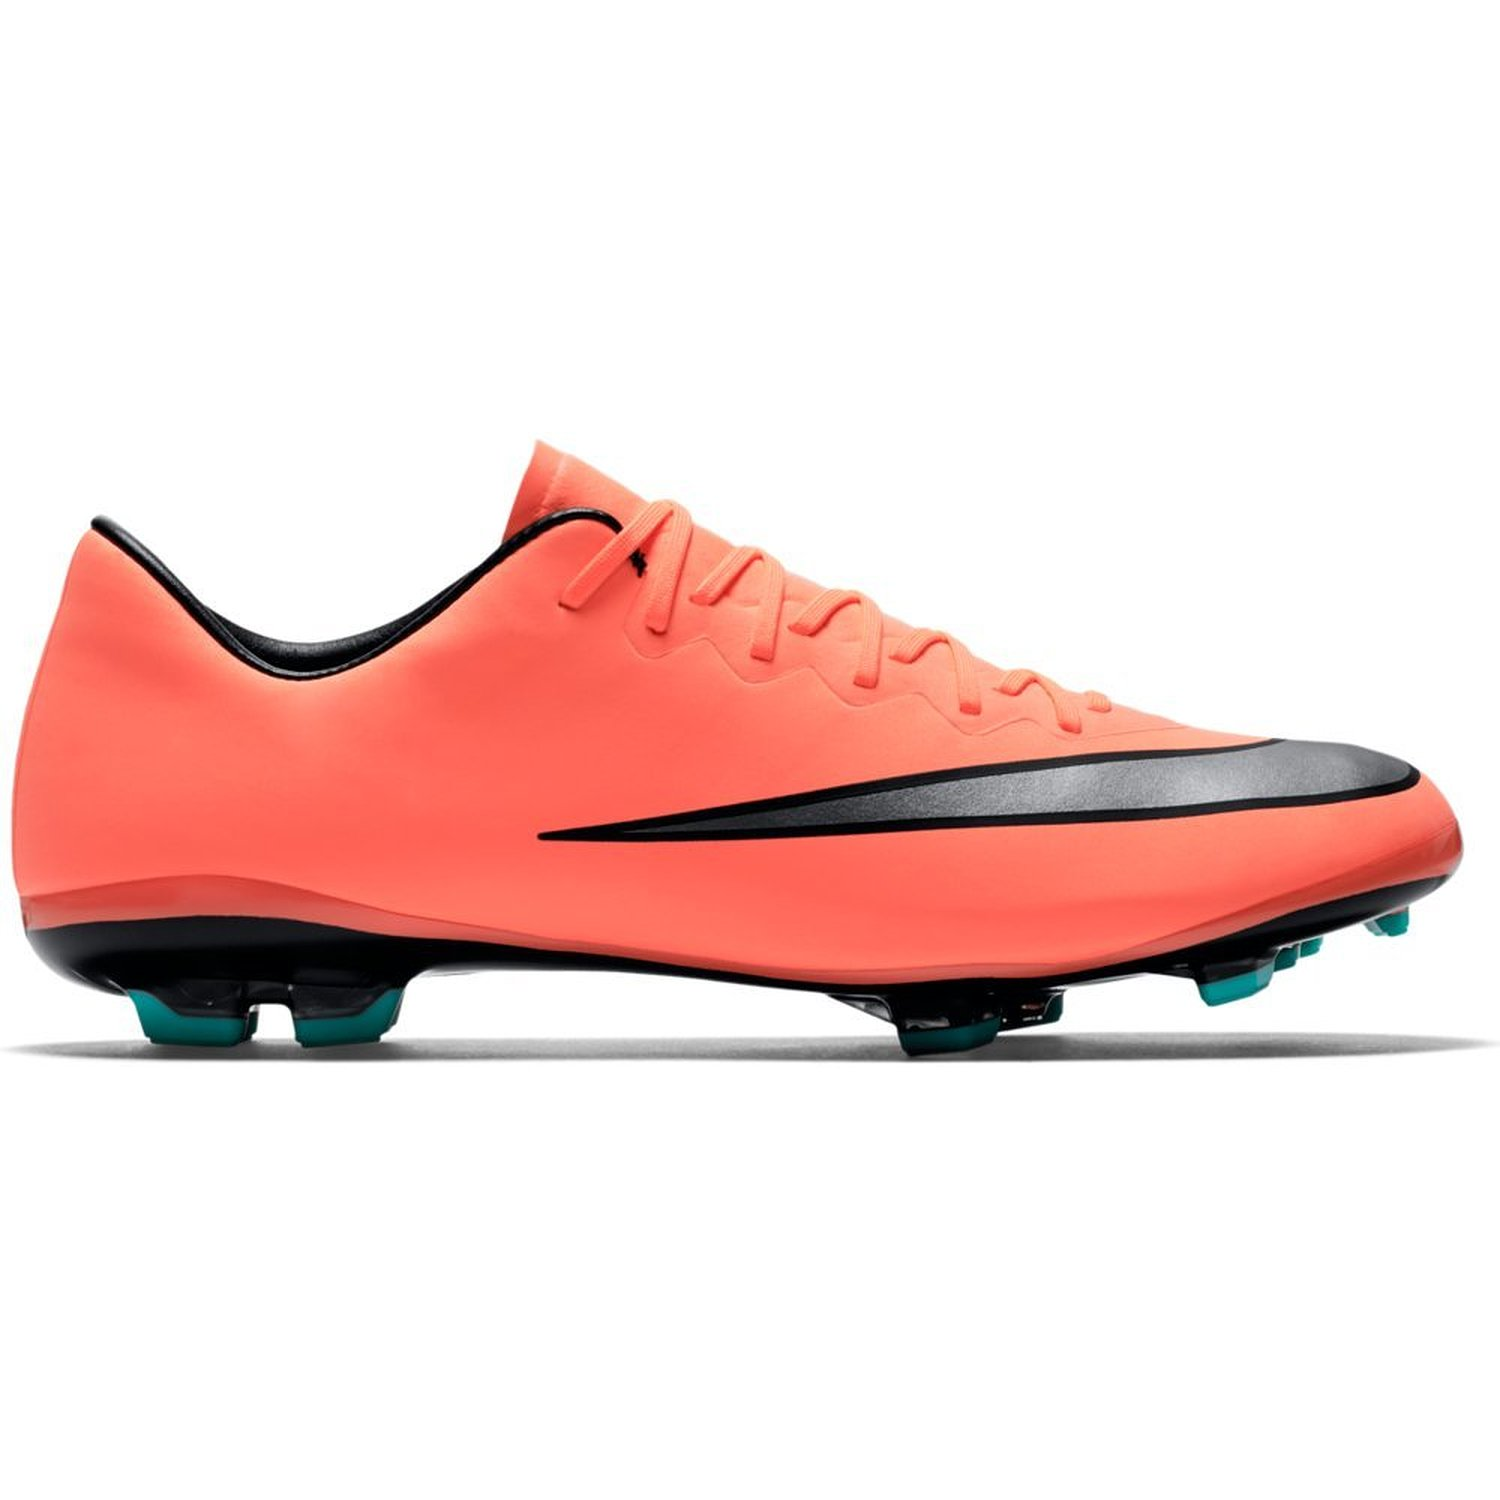 buy online 8237c ed386 Nike Jr. Mercurial Vapor X FG Soccer Cleat (Bright Mango)